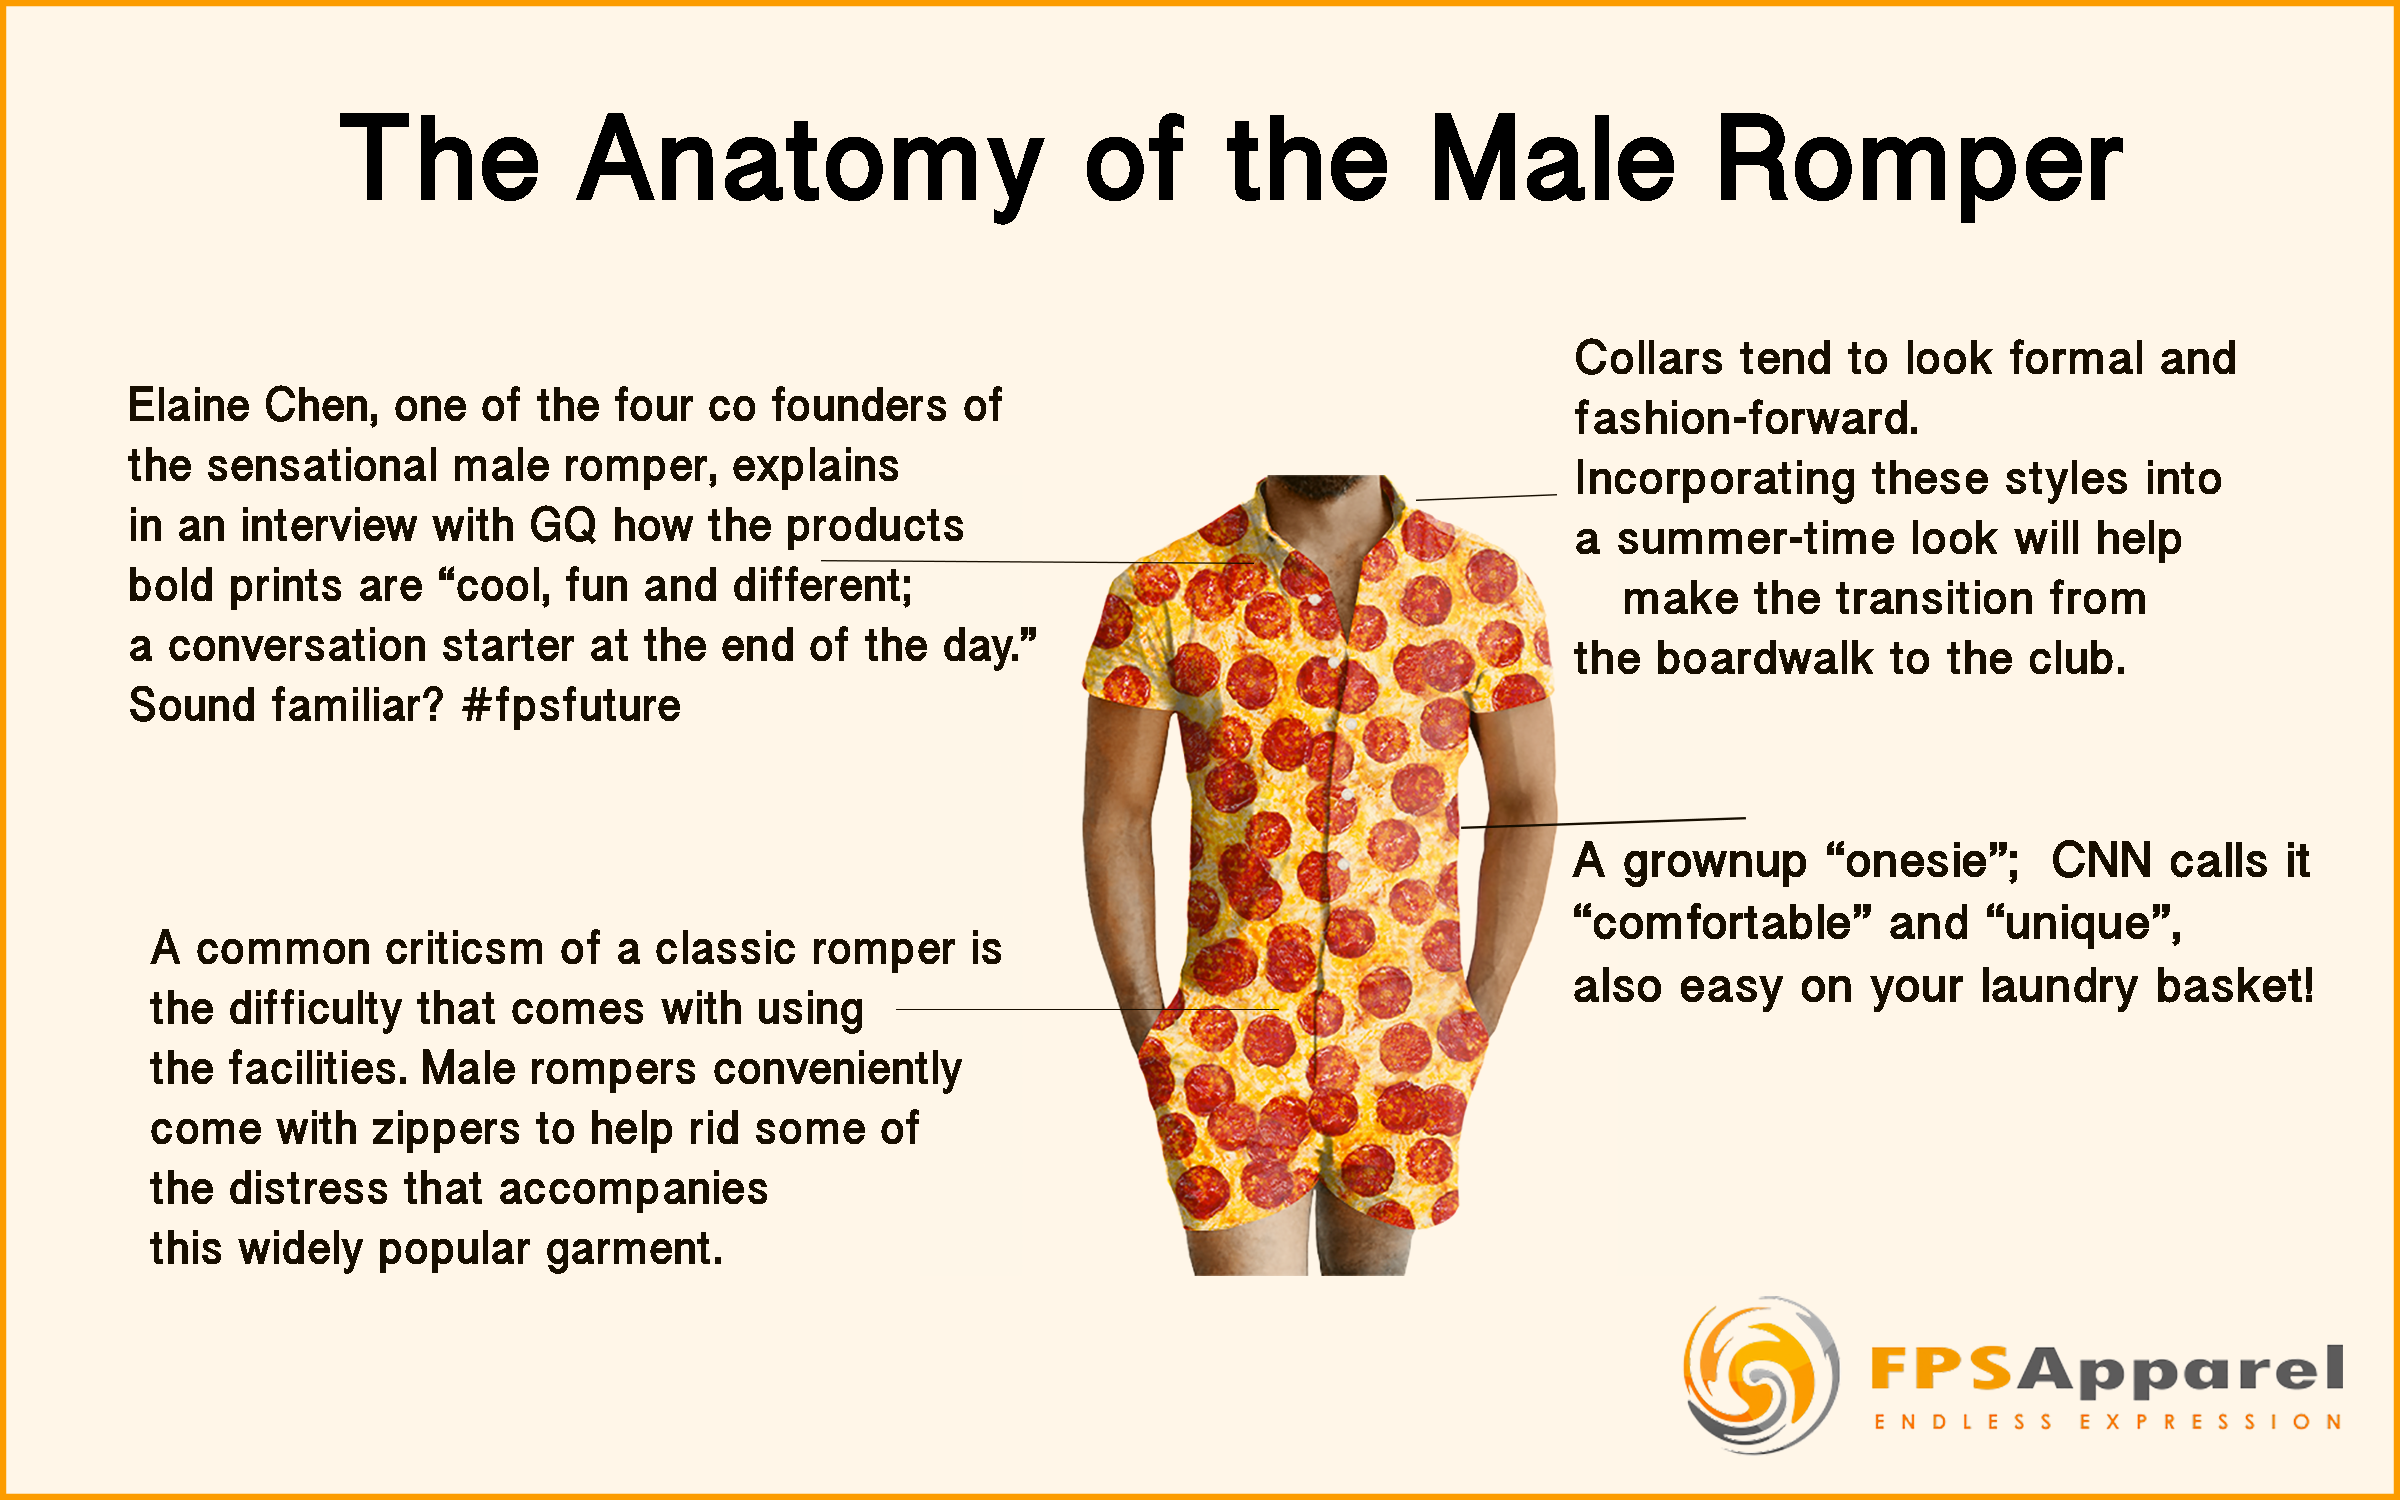 The Anatomy of the Male Romper - Captiv8 Promotions